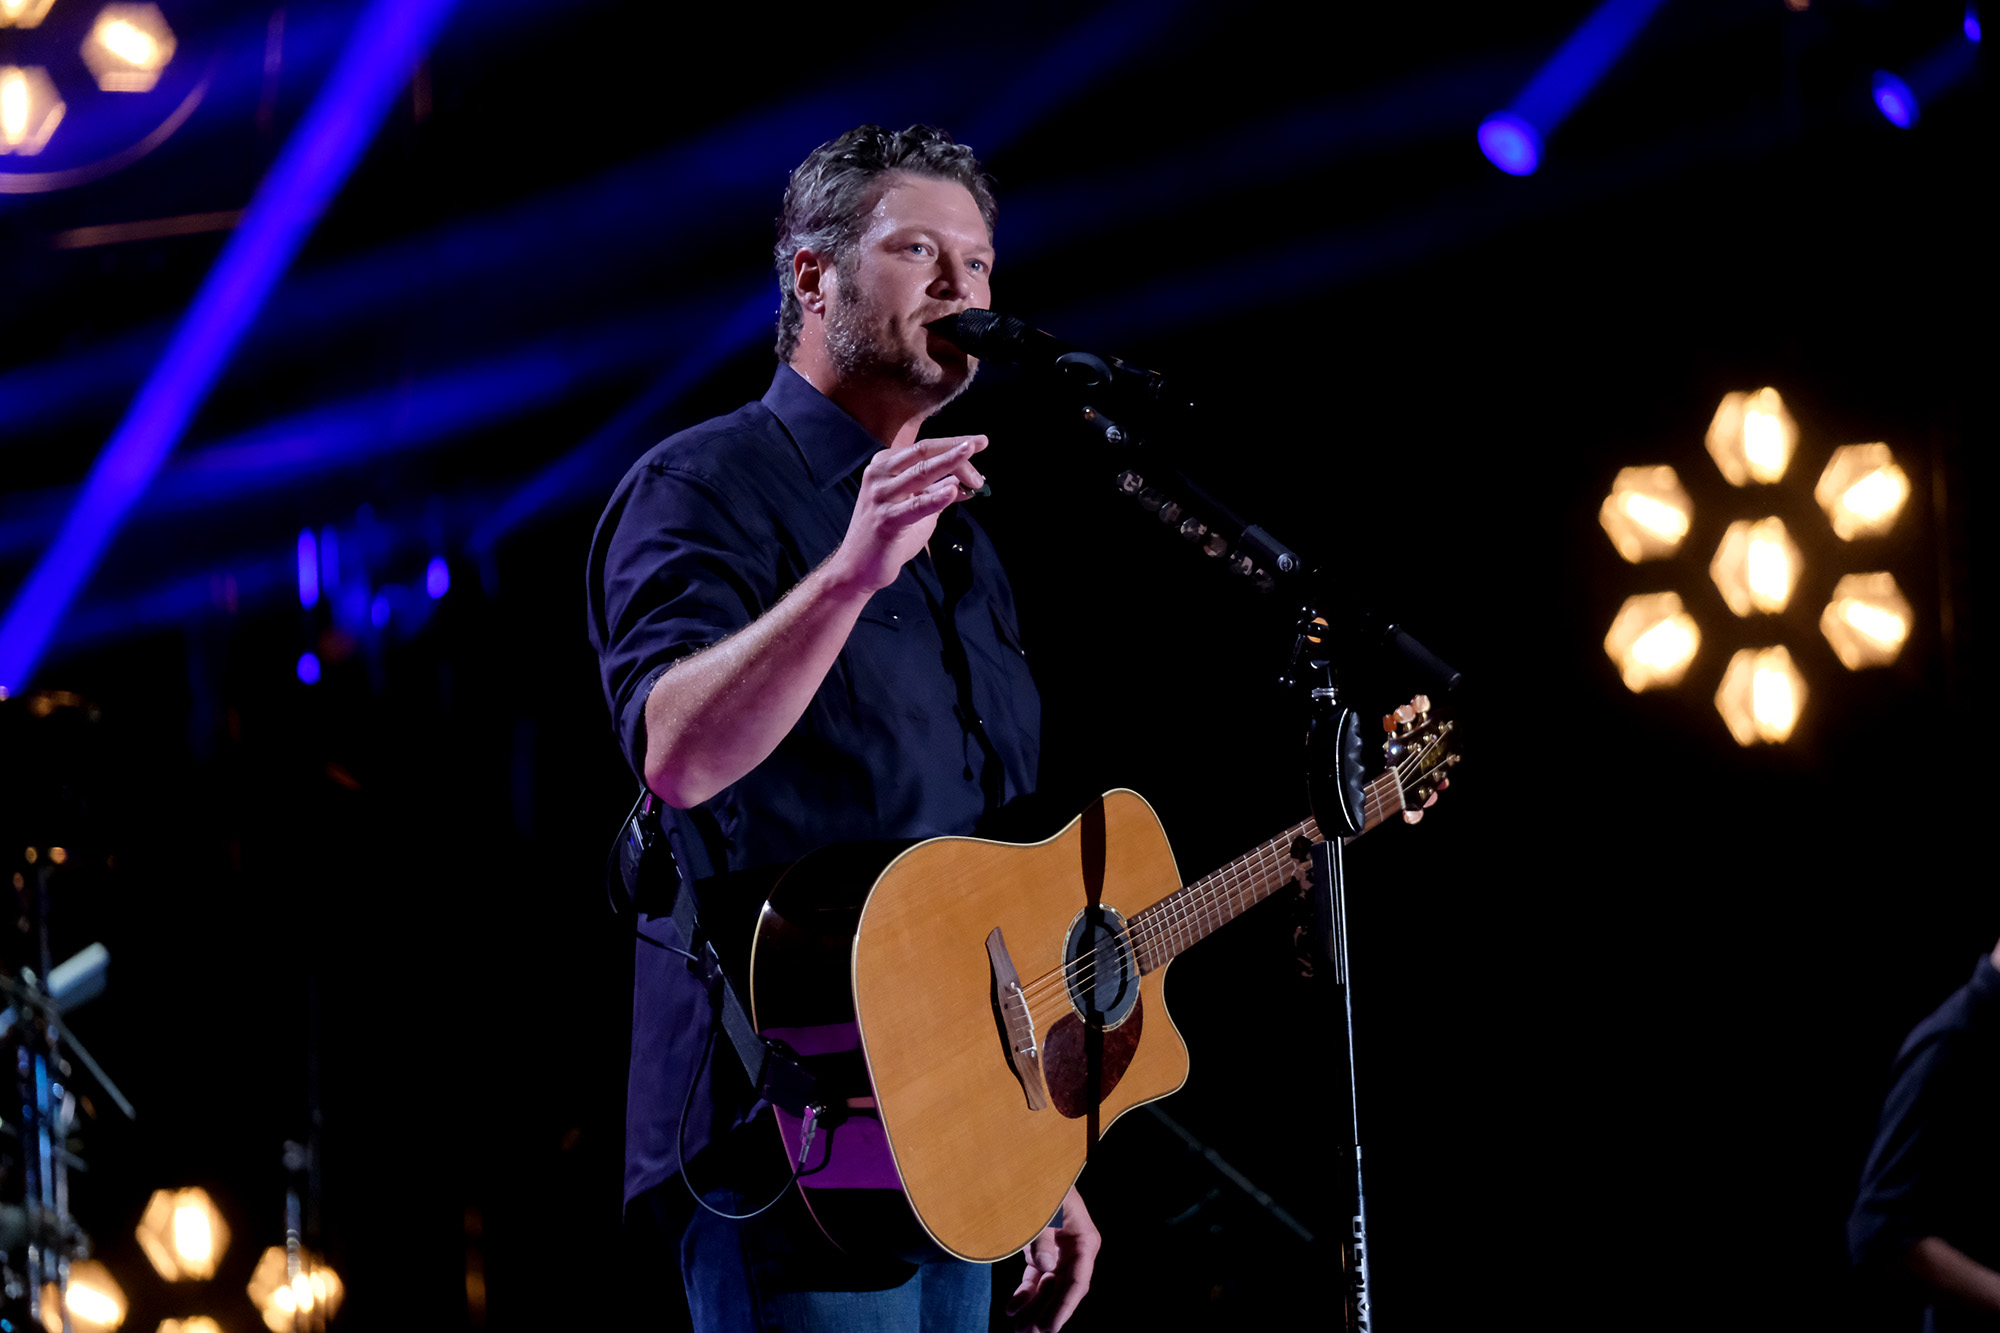 Blake Shelton on The Voice, The Voice 2018 Contestants, The Voice 2018 Winners